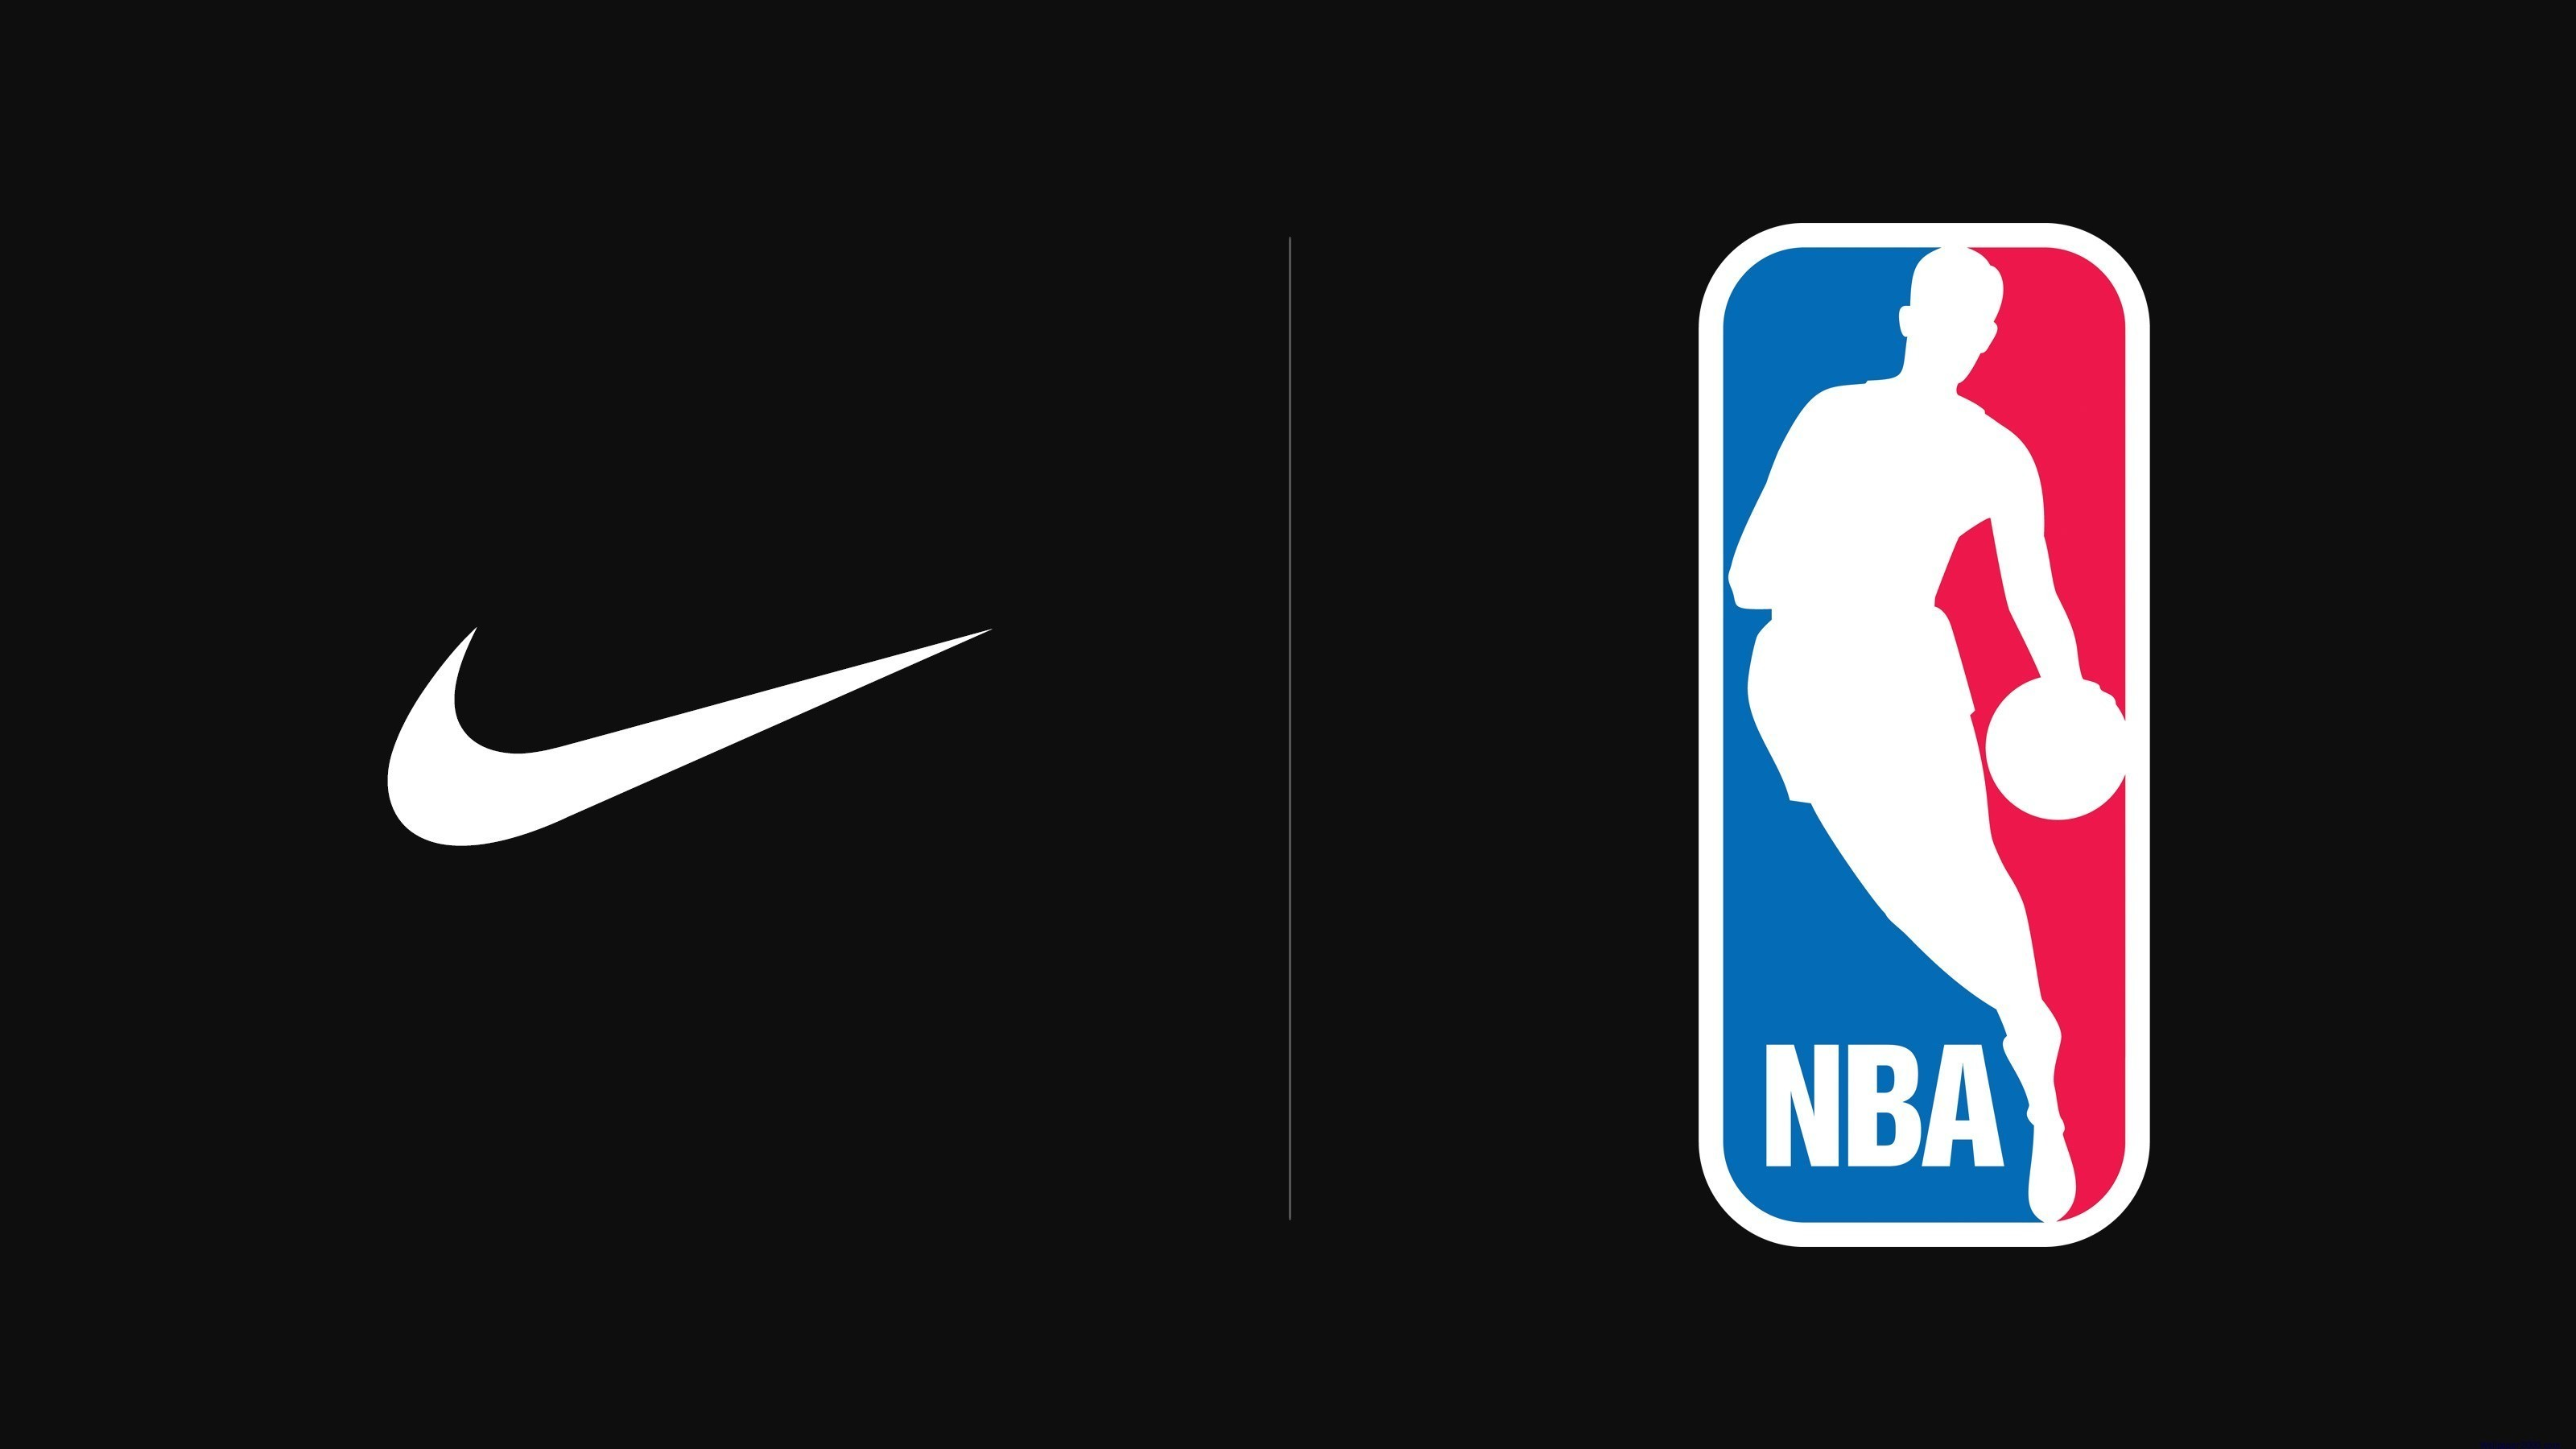 3200x1800 1920x1080 File Cool Nike Logos Wallpaper